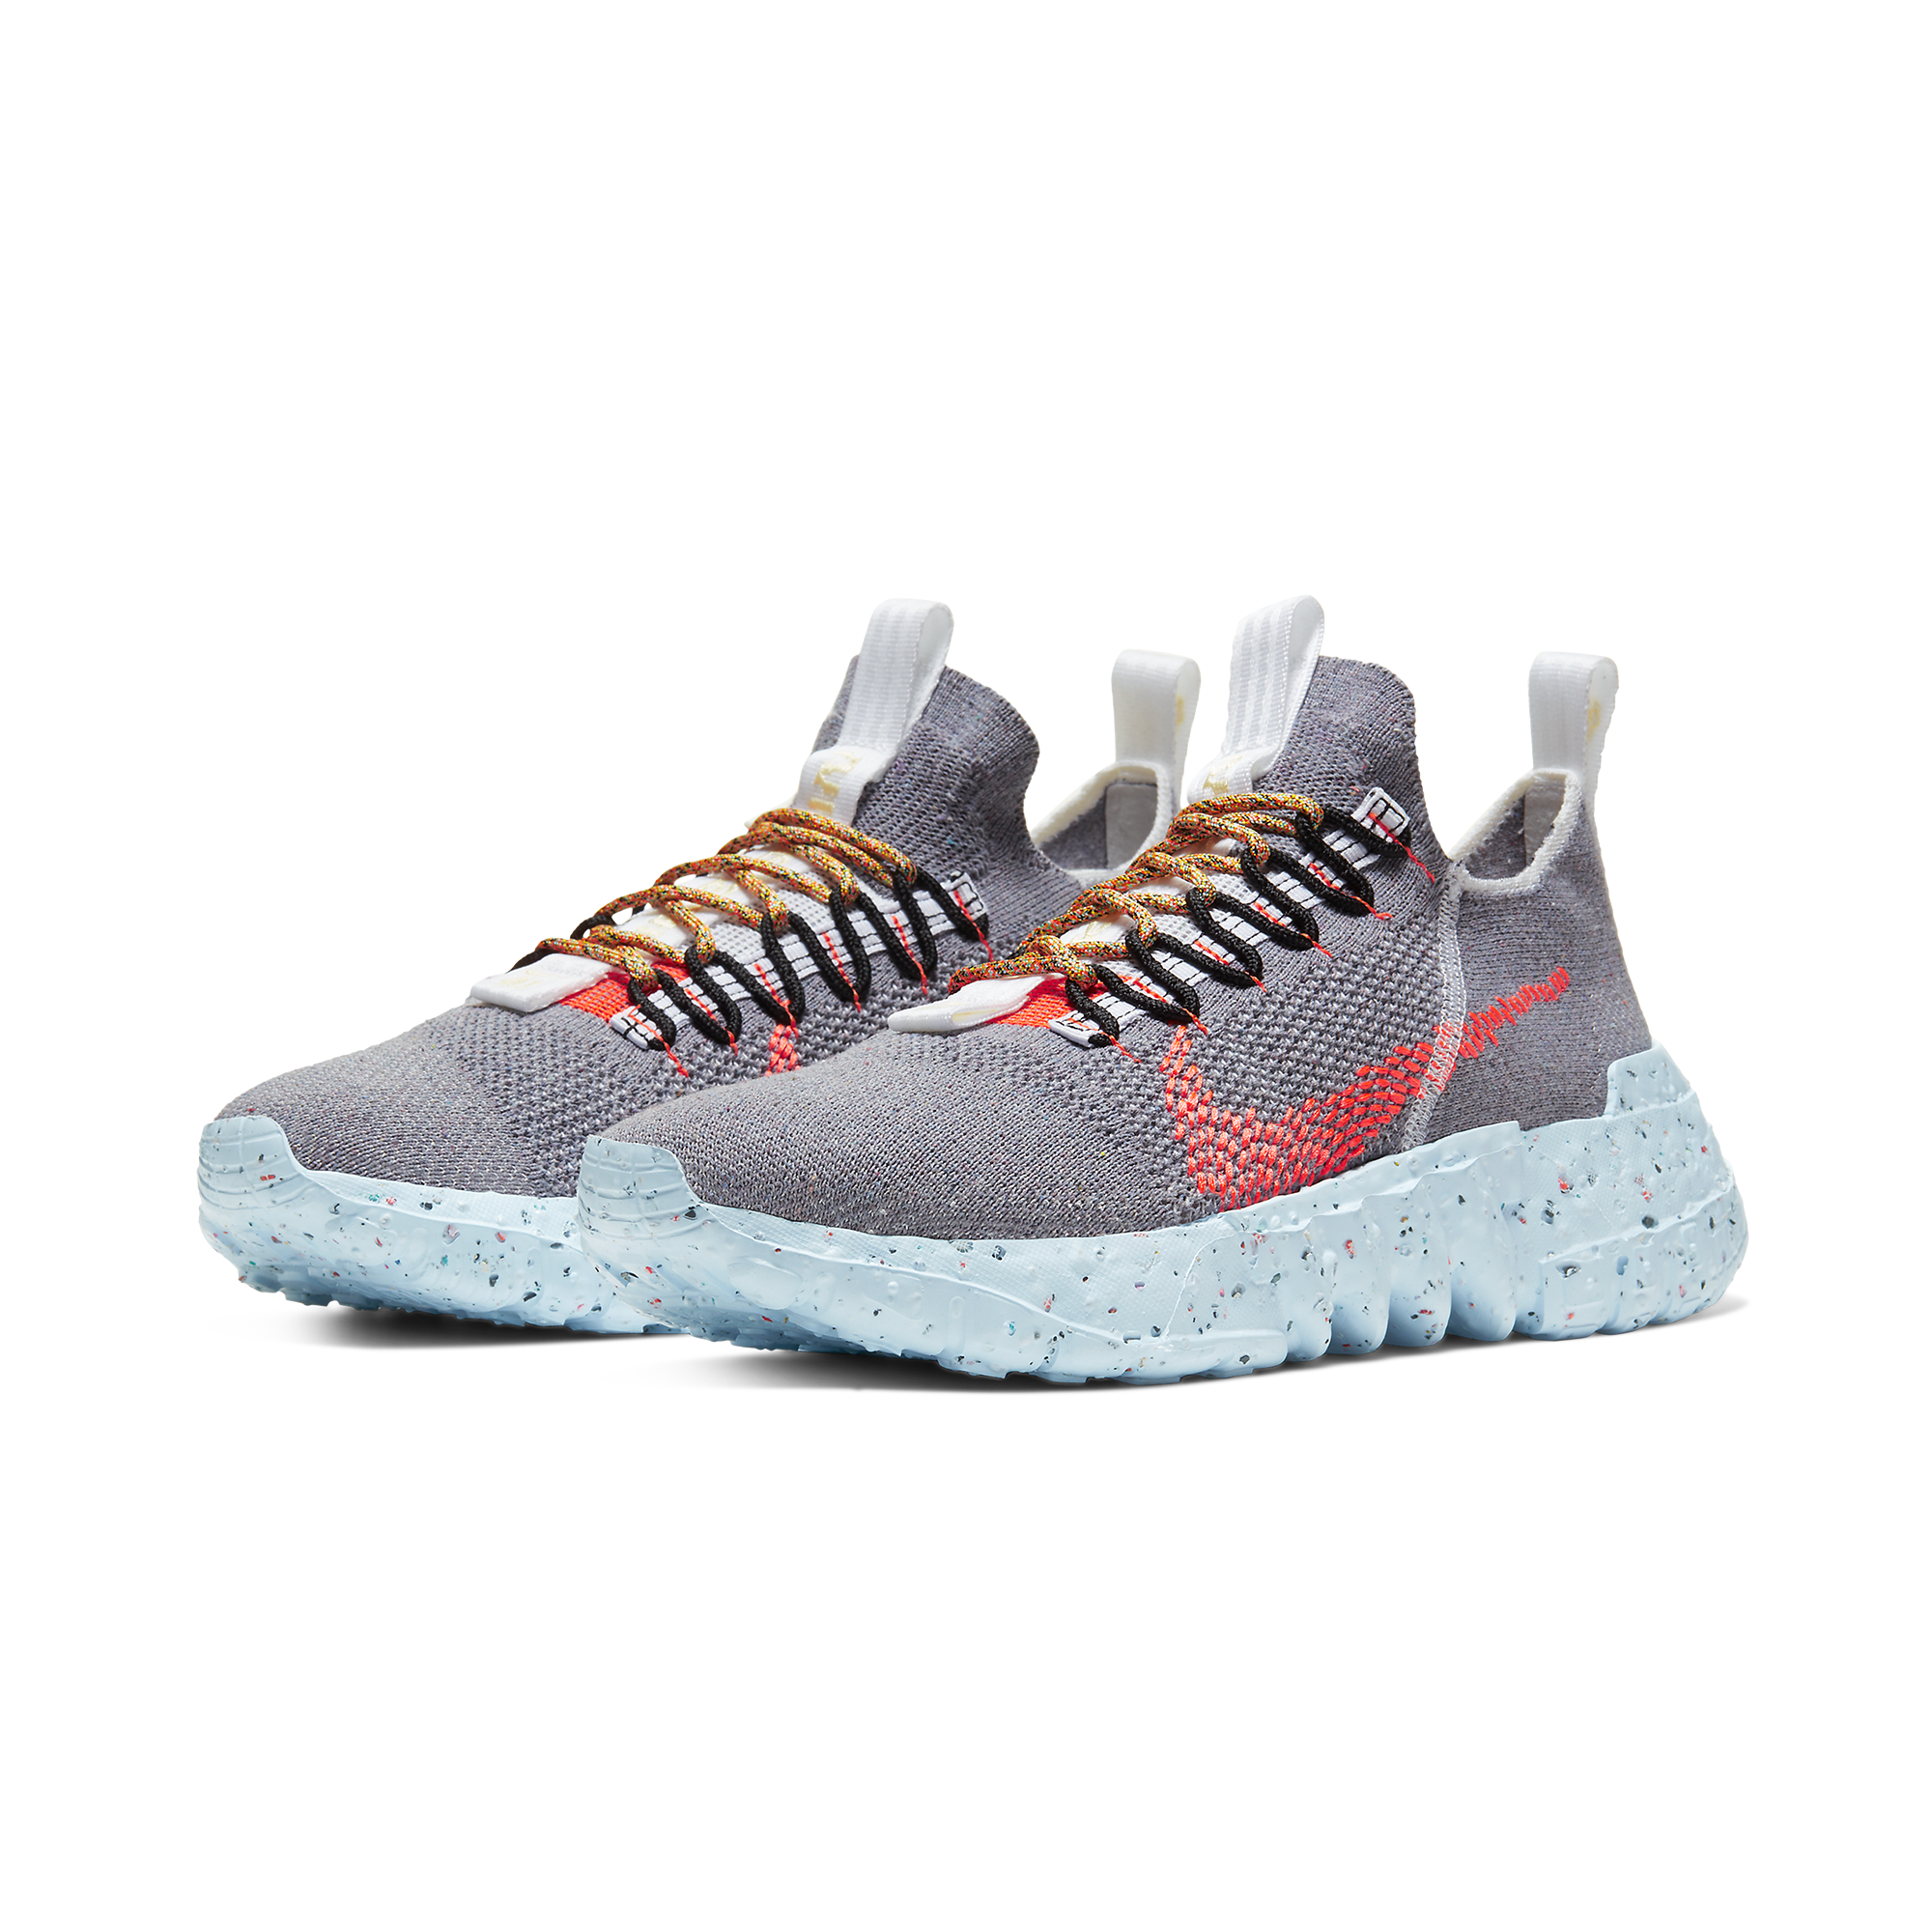 Nike Space Hippie 01 - Vast Grey